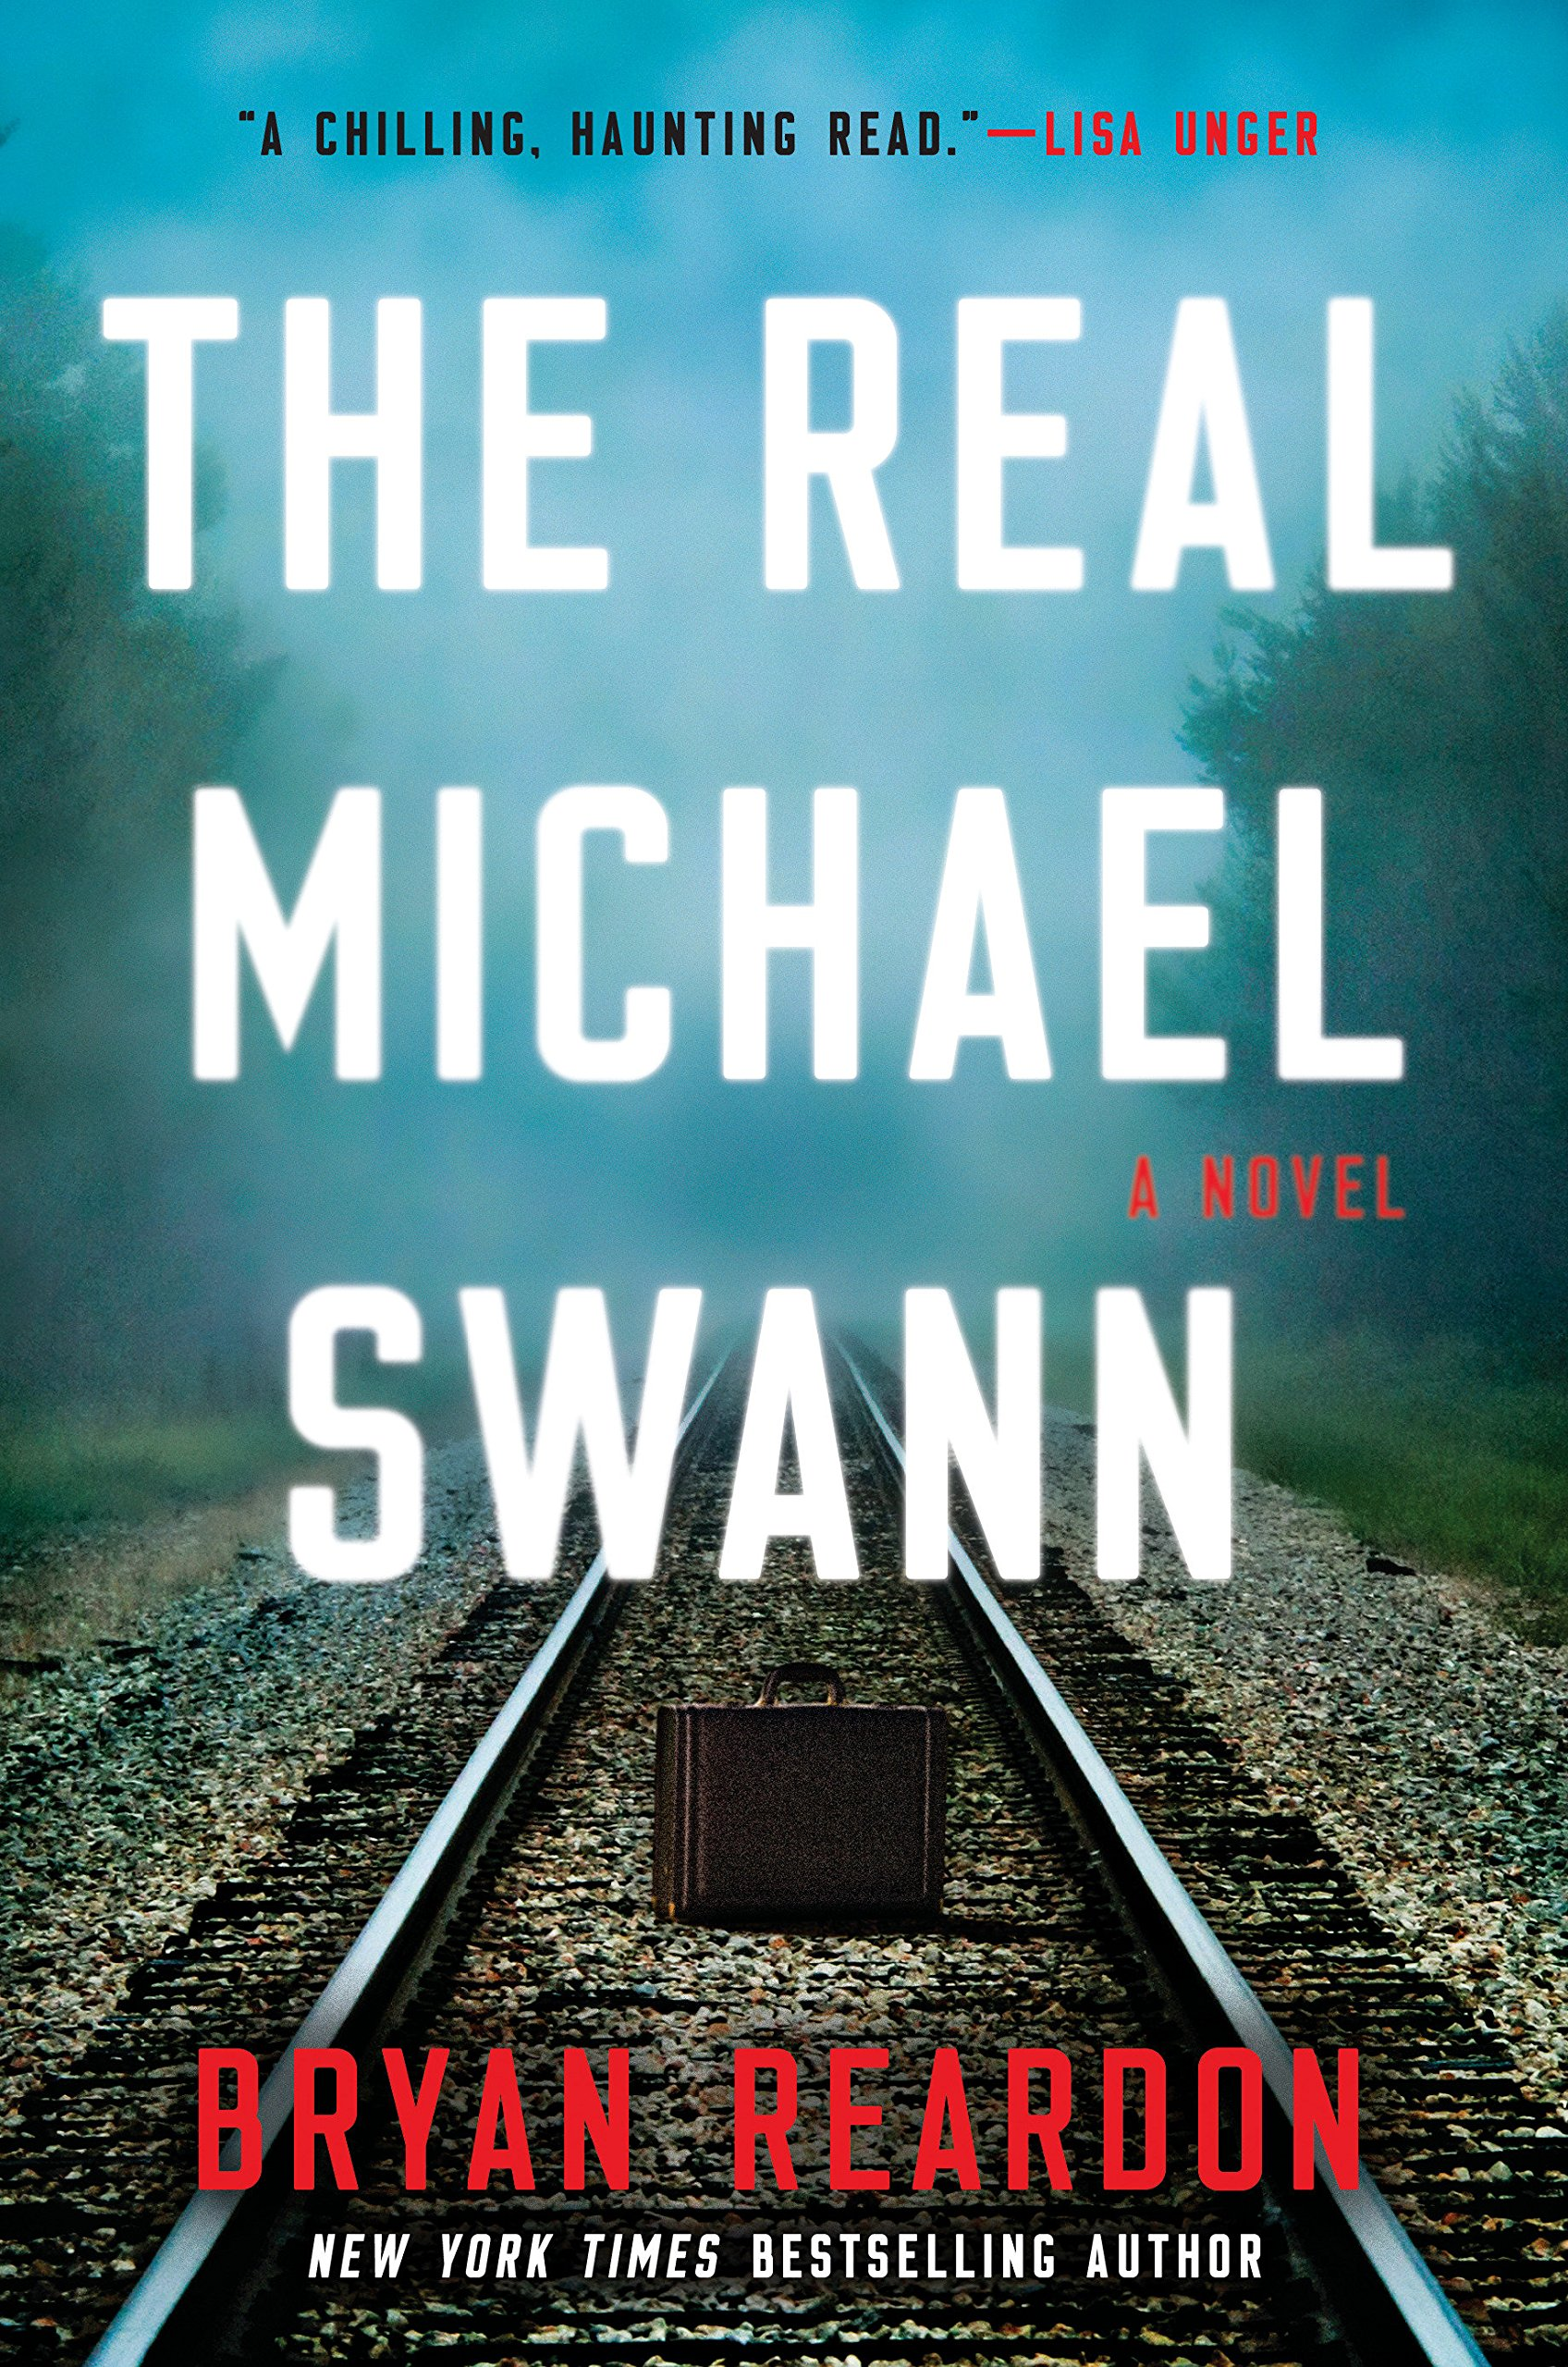 Amazon.com: The Real Michael Swann: A Novel (9781524742324): Bryan ...